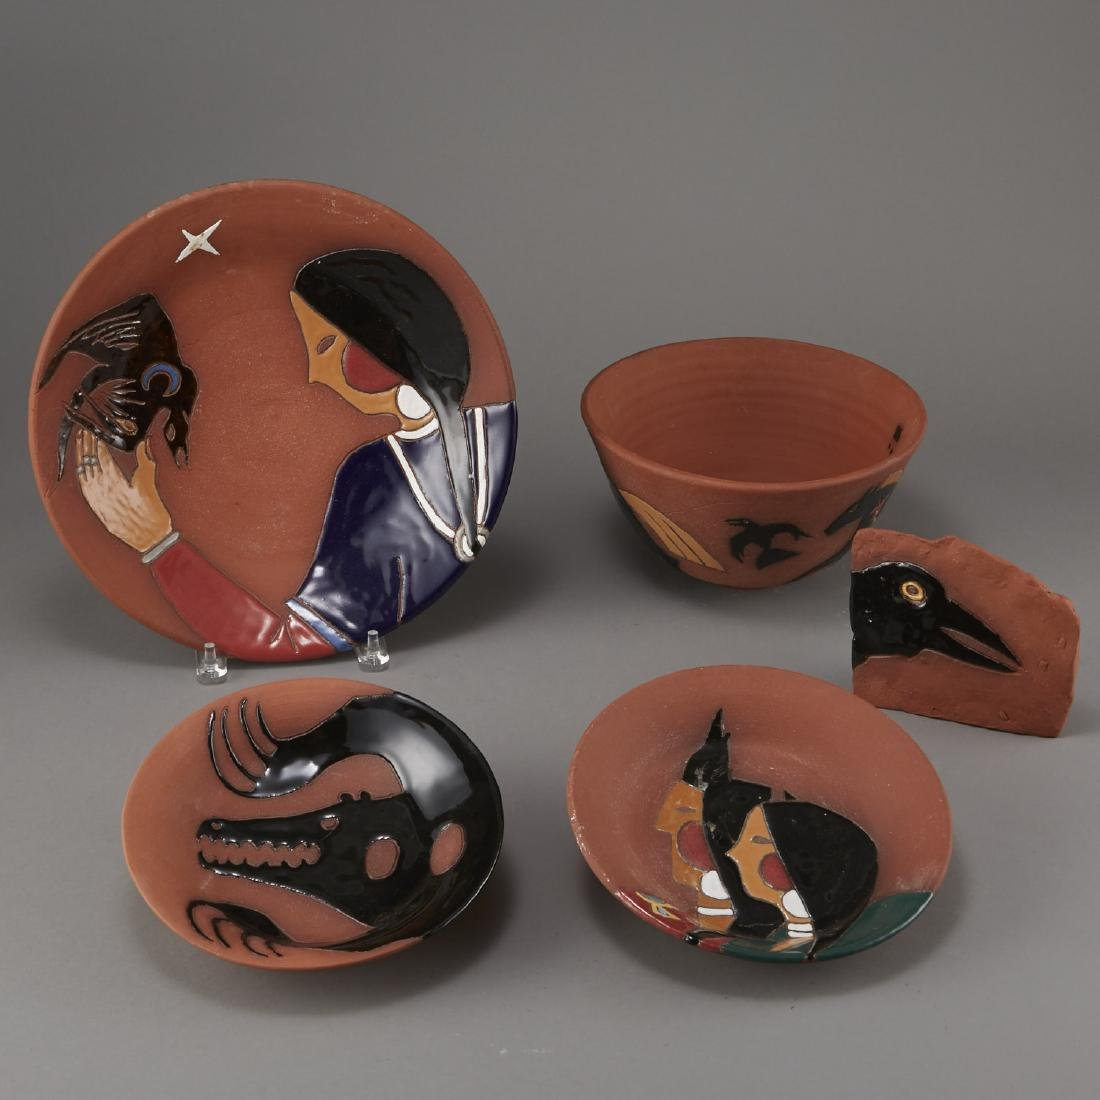 Group of 5 Glen LaFontaine Pottery pieces - 4